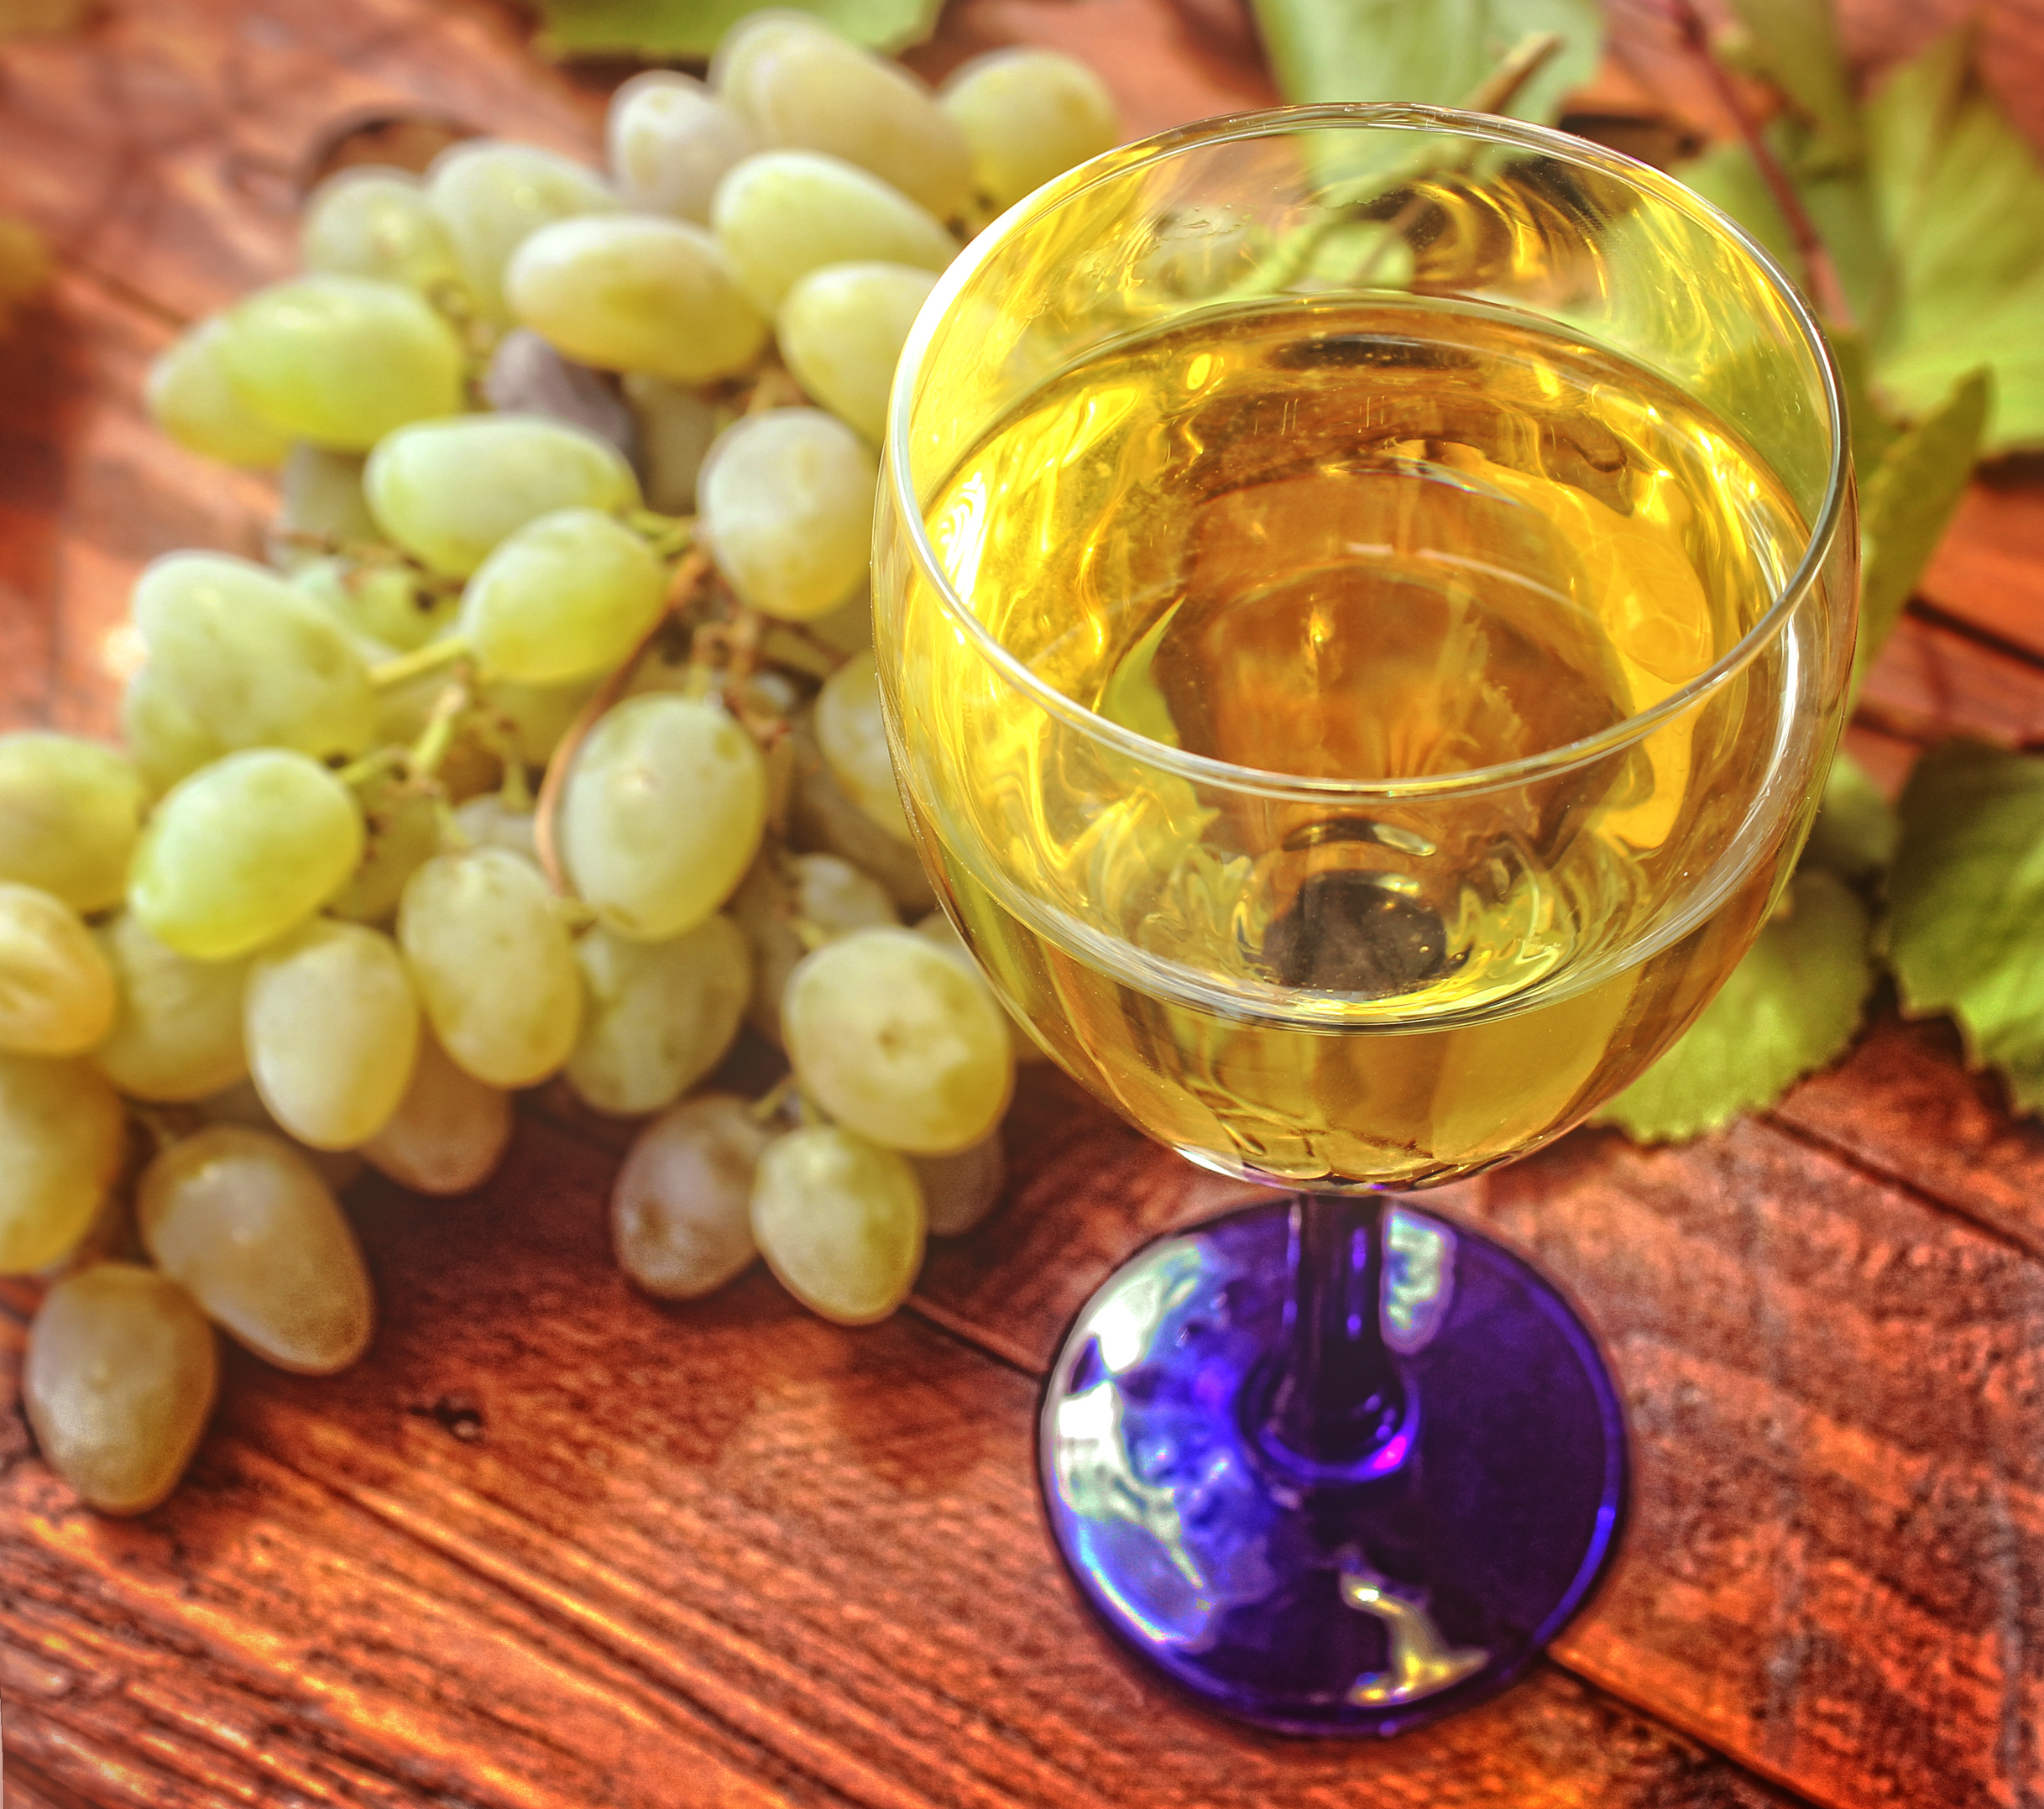 Glass of white wine and a bunch of grapes in the background photo